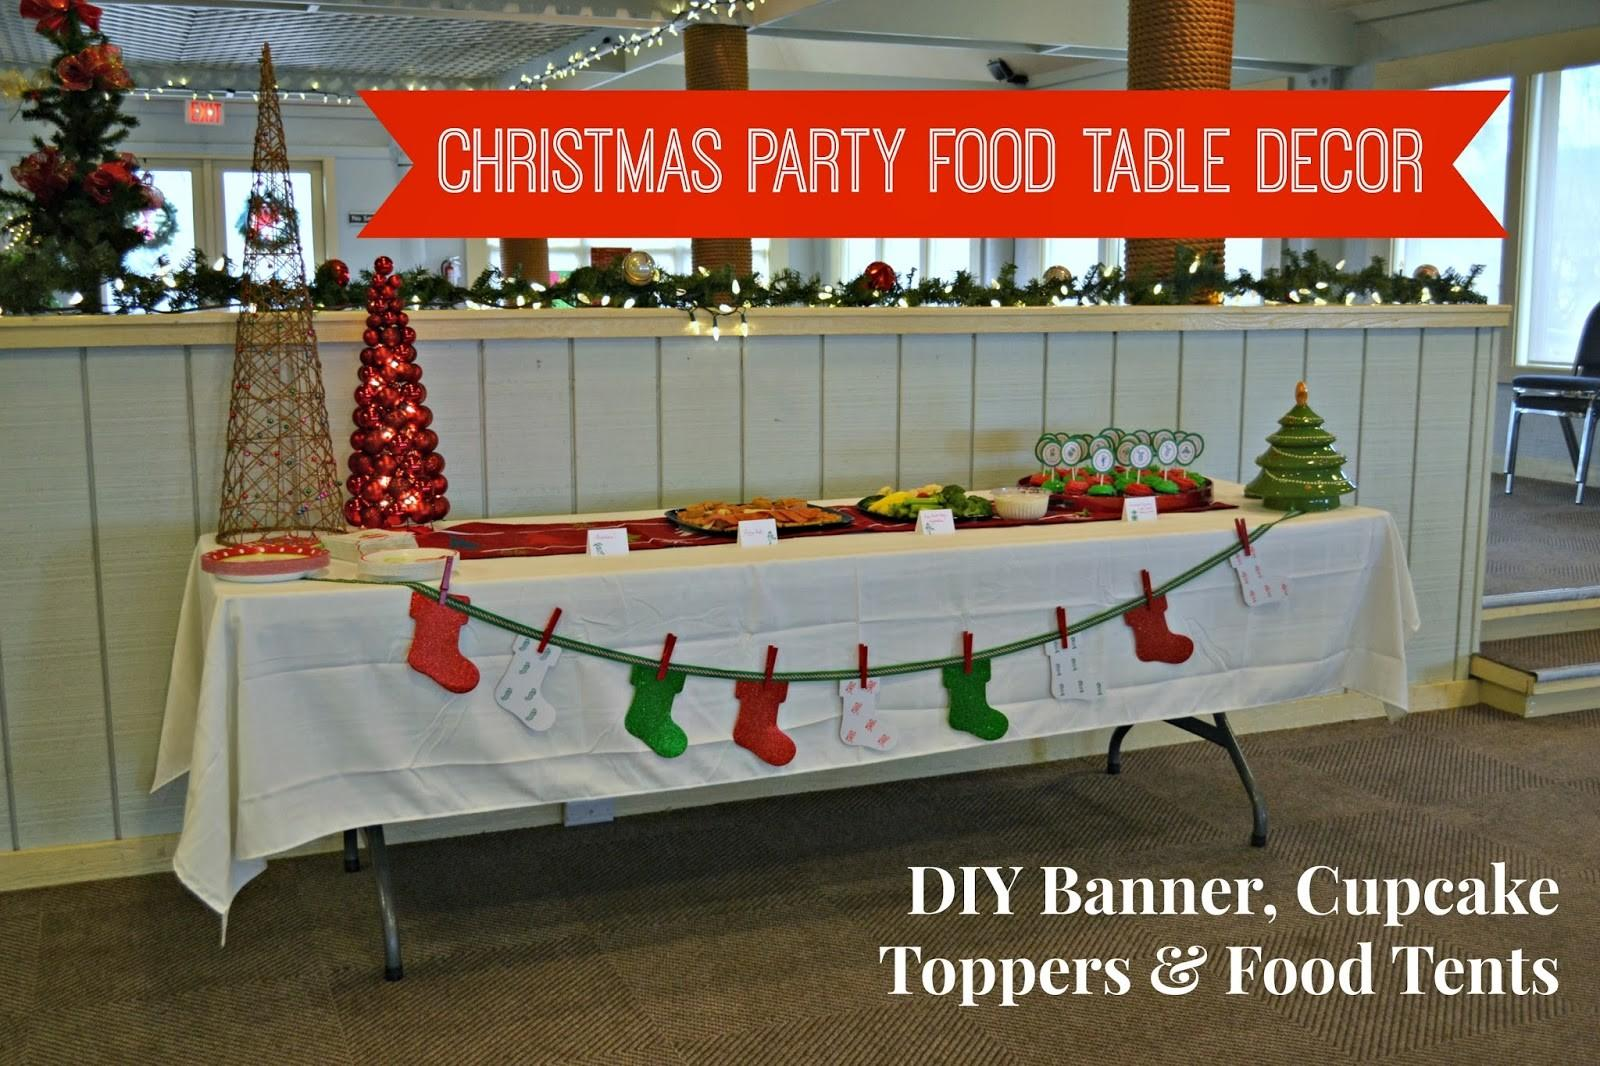 Stamp Camp Christmas Party Food Table Decor